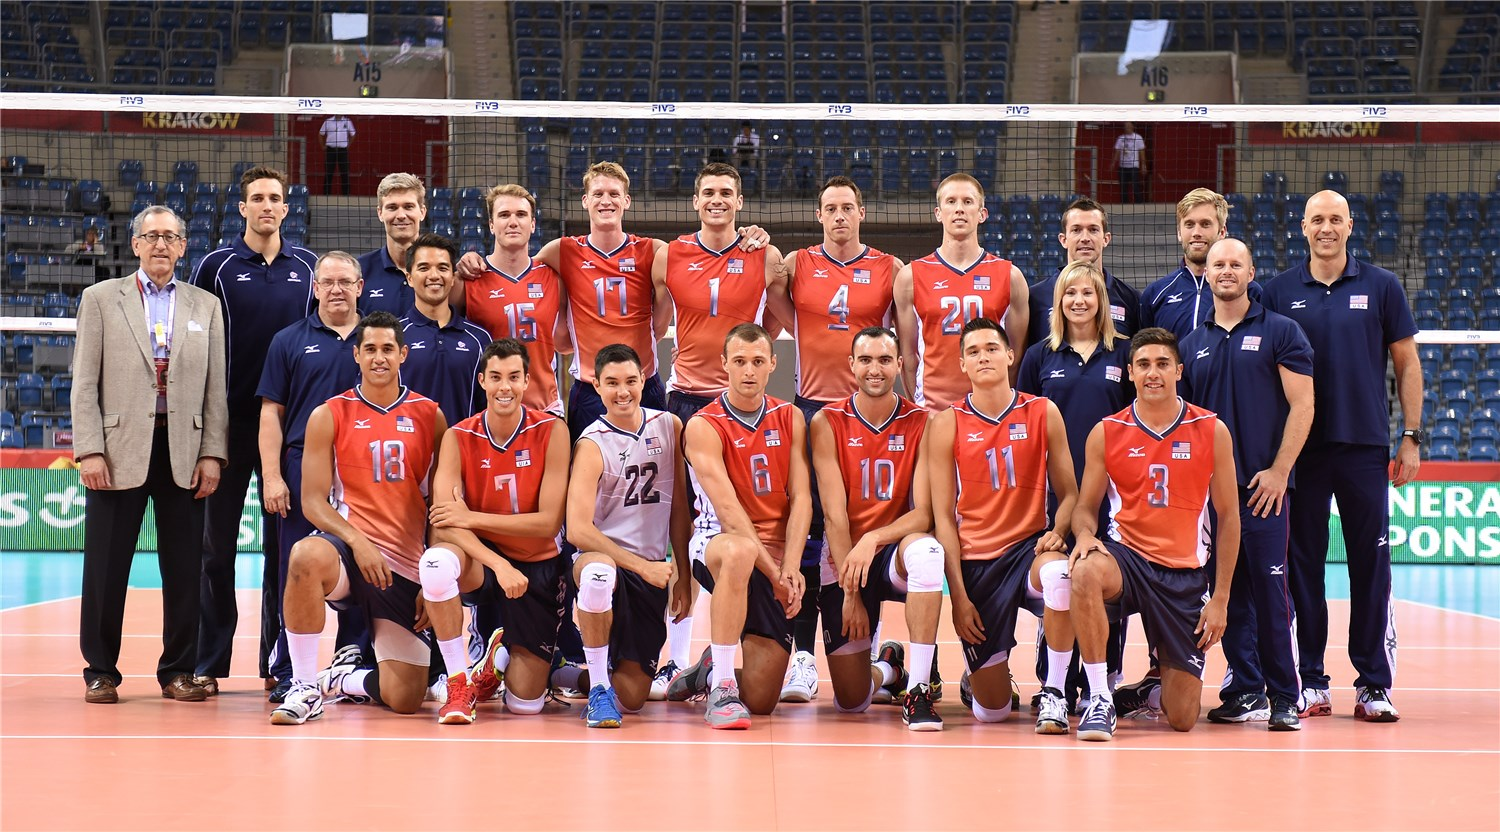 Overview Usa Fivb Volleyball Men S World Championship Poland 2014